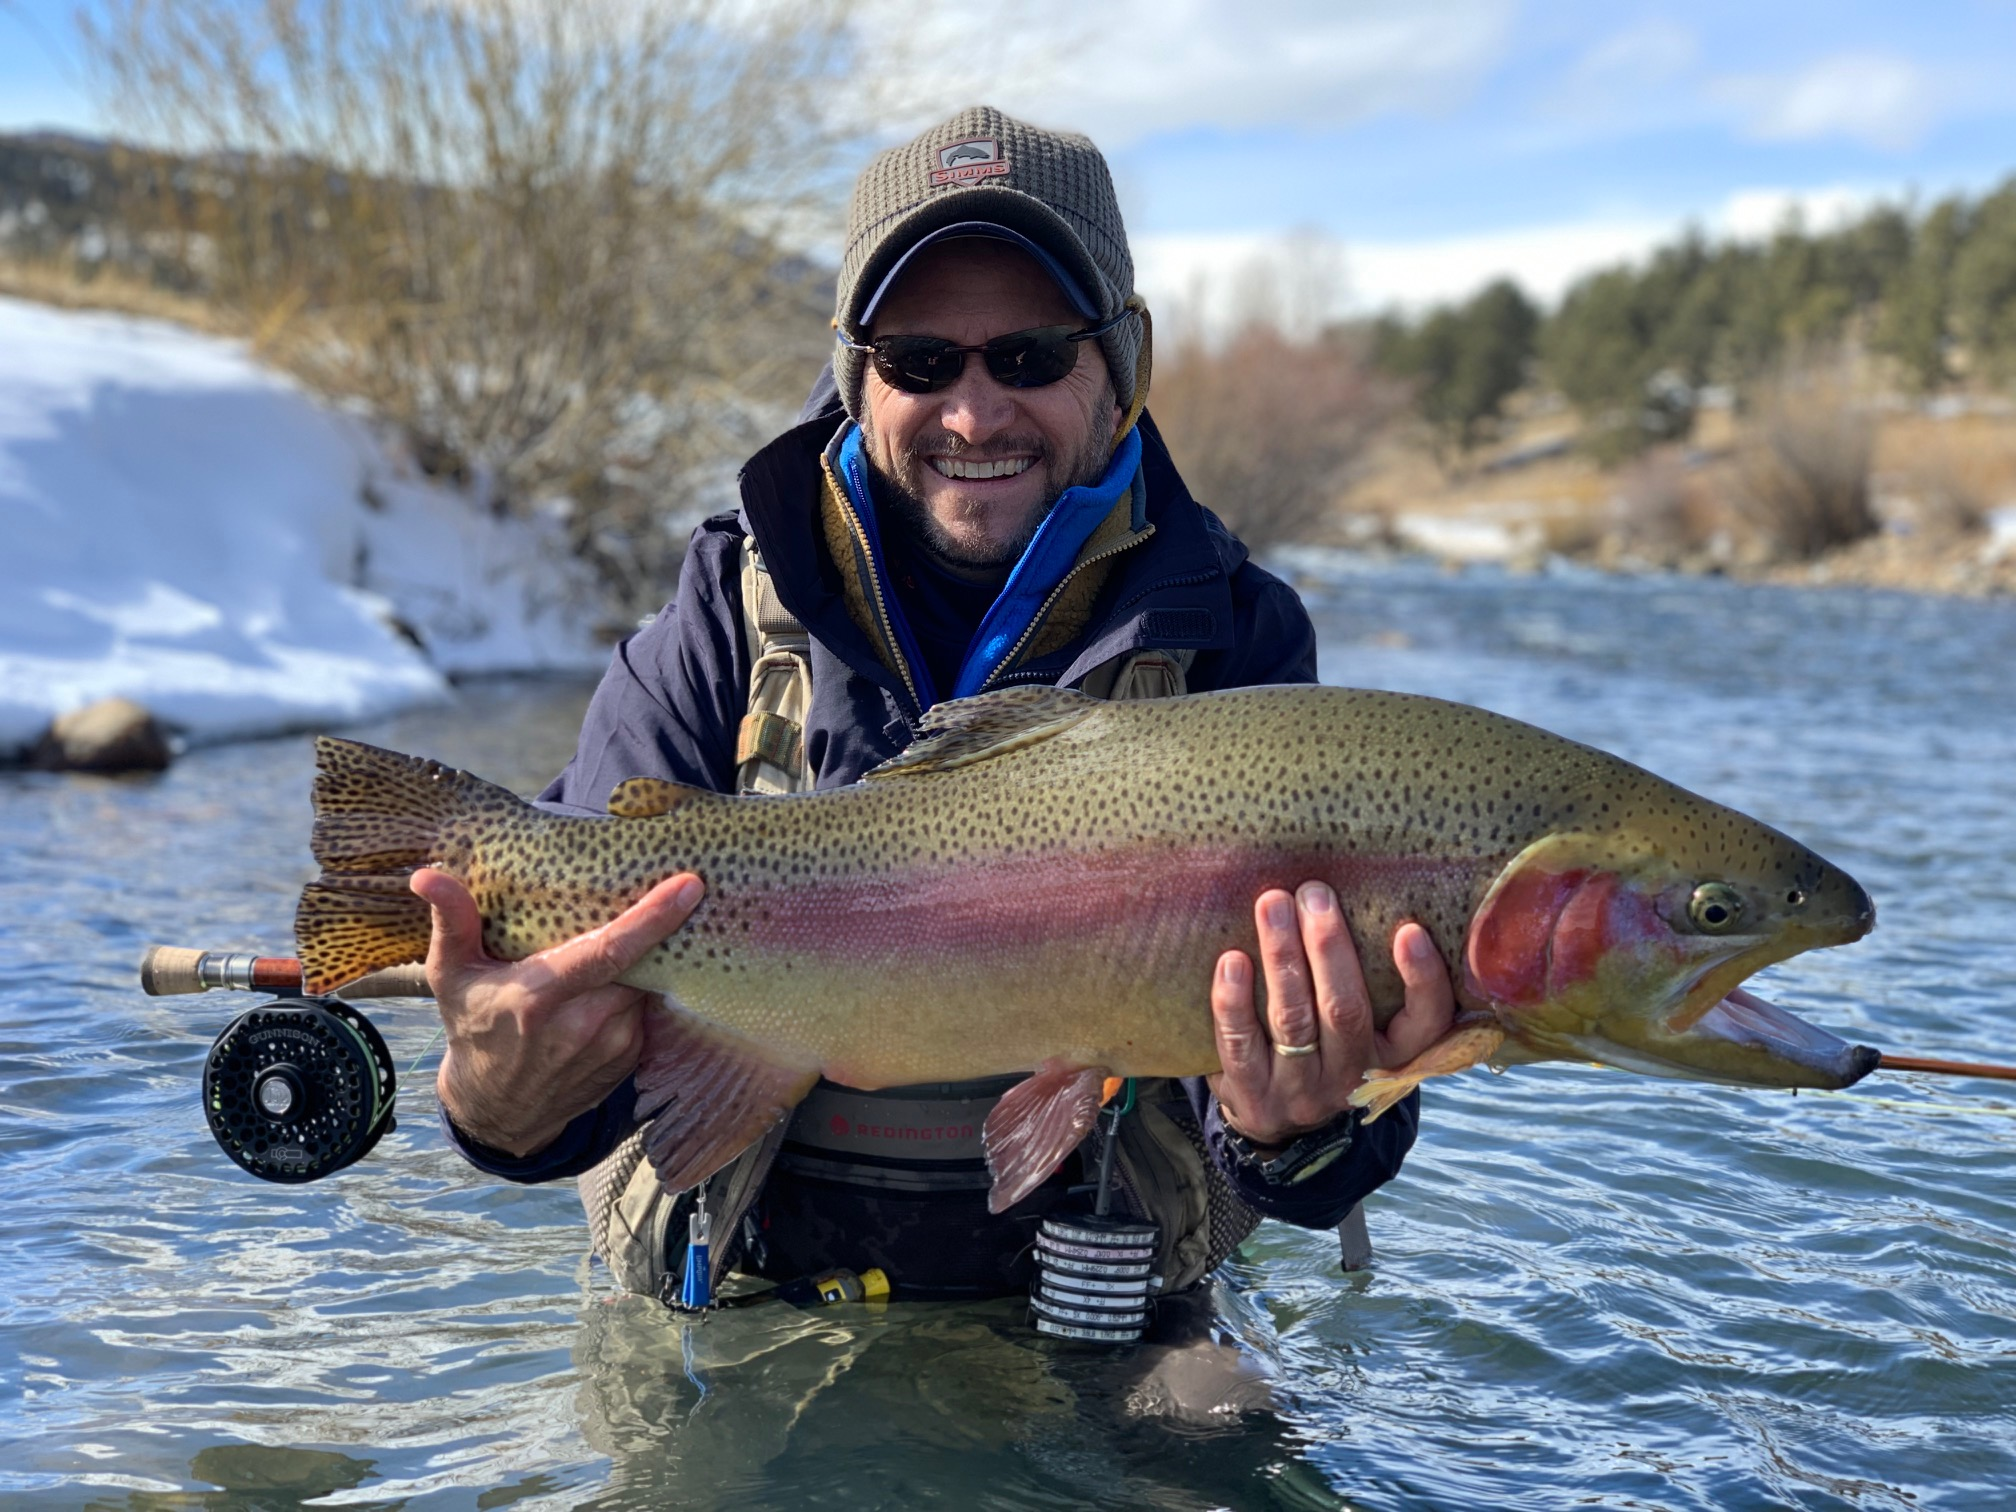 A trophy rainbow trout from the North Fork of the South Platte